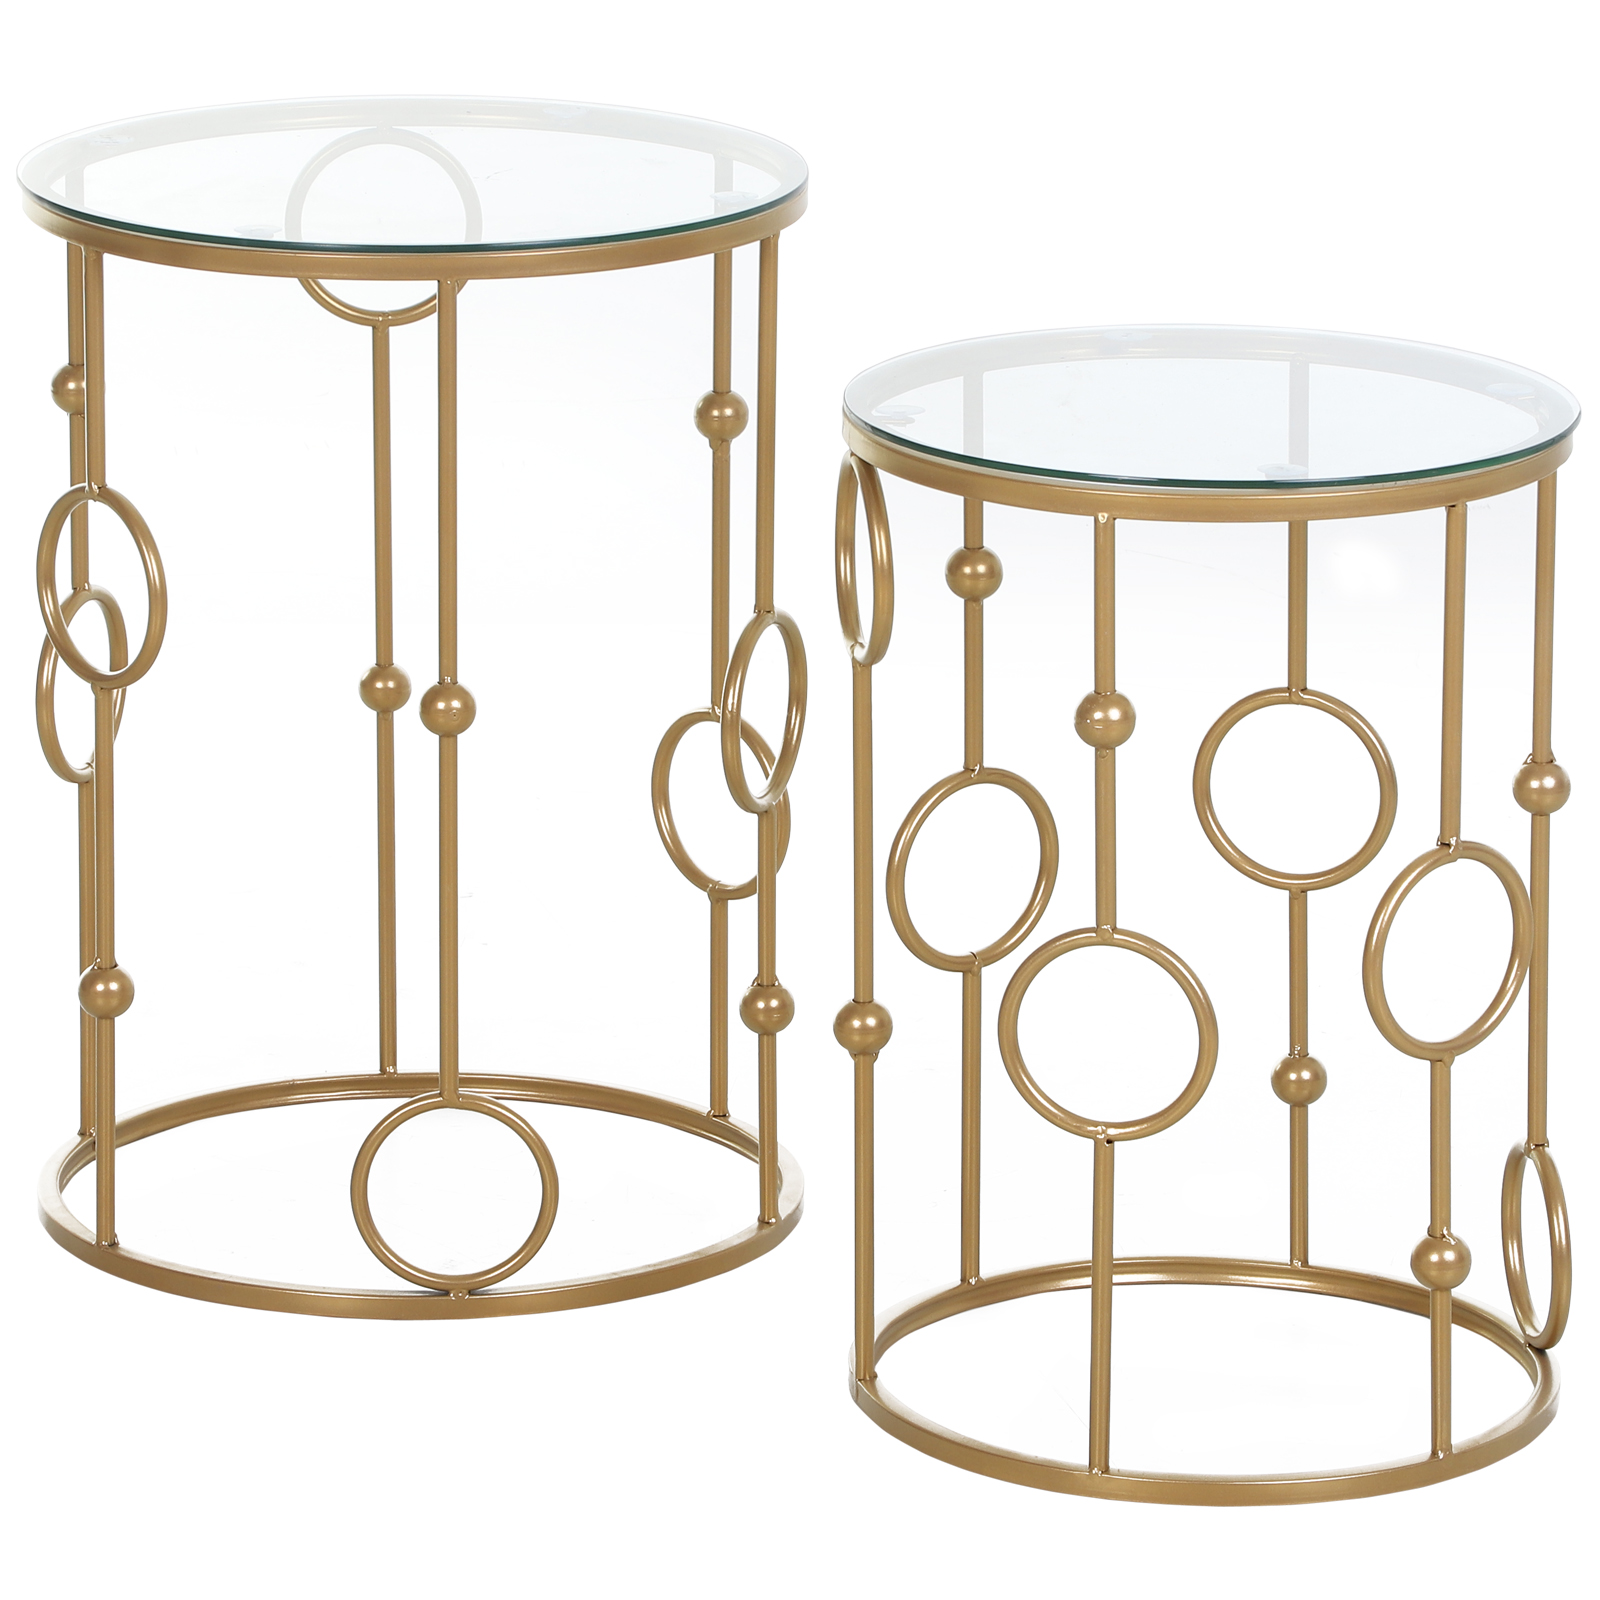 Tables gigognes lot de 2 tables basses design style art déco doré verre